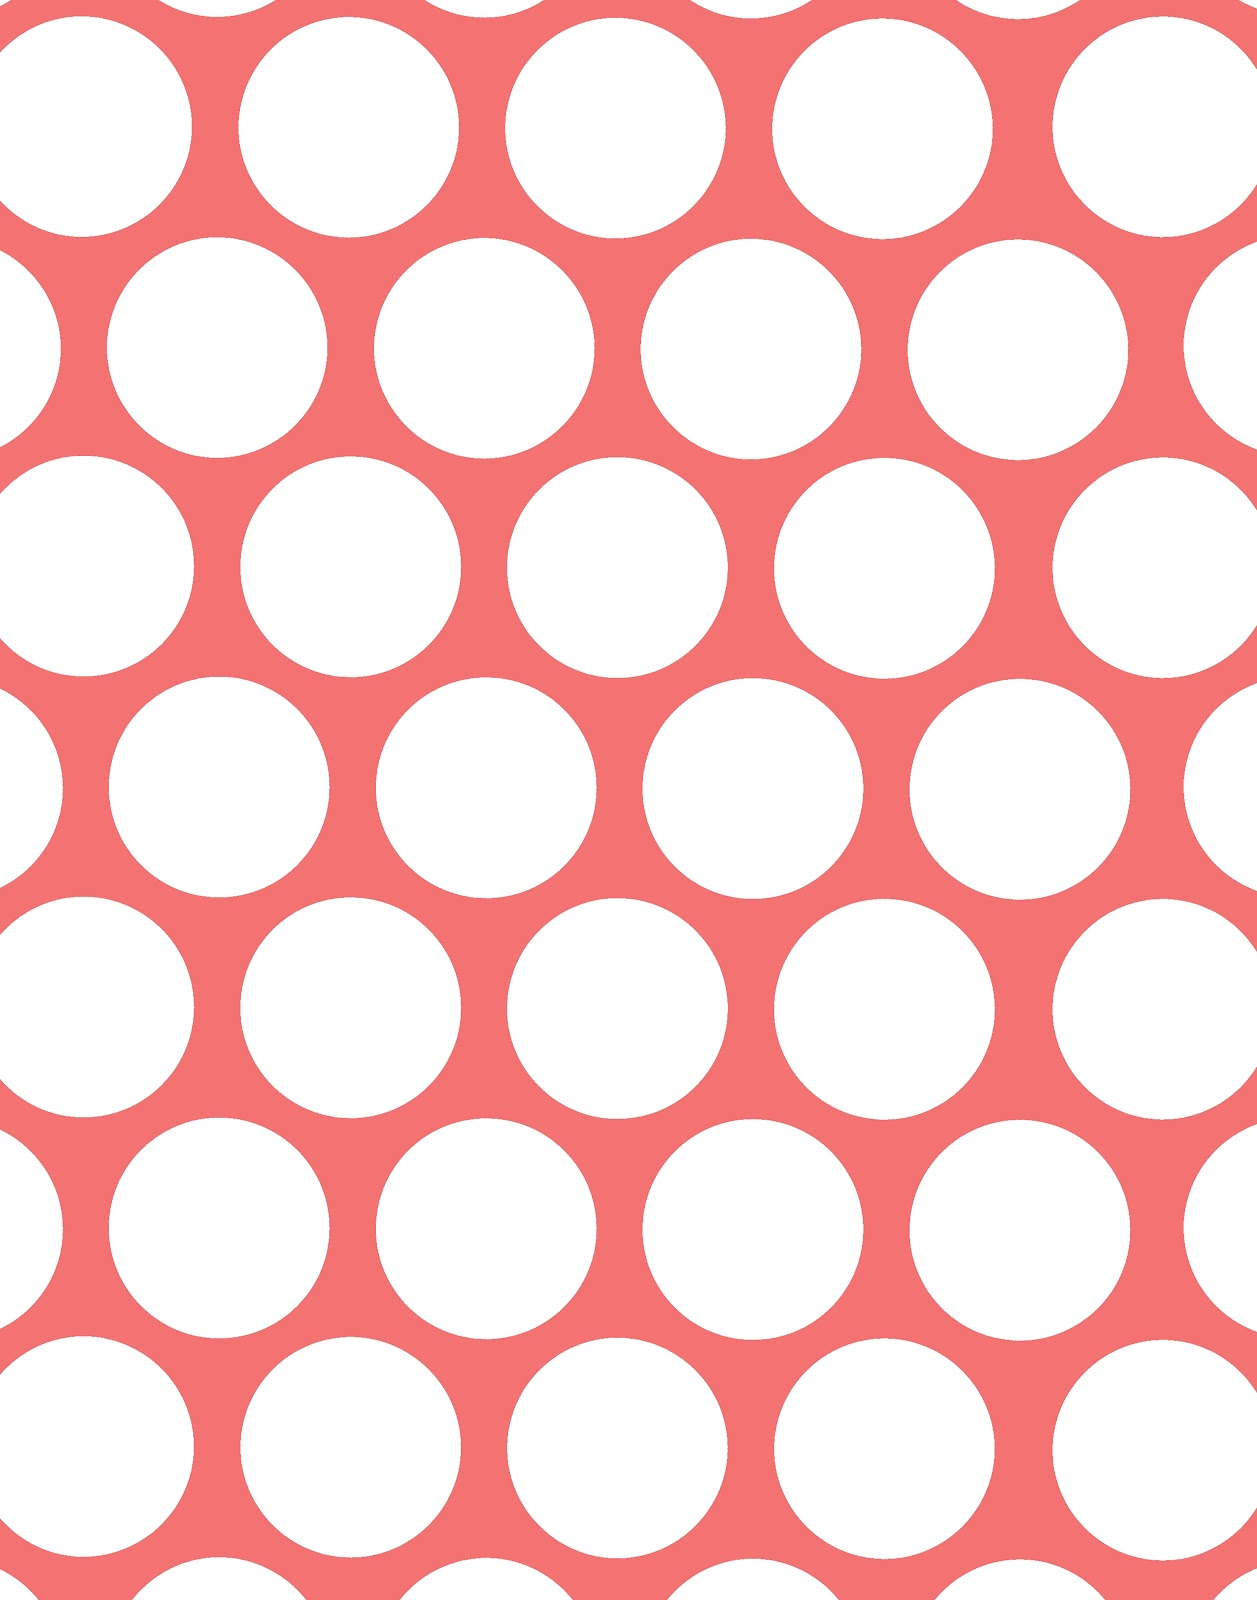 Dotted Background Image Backgrounds Polka Dots